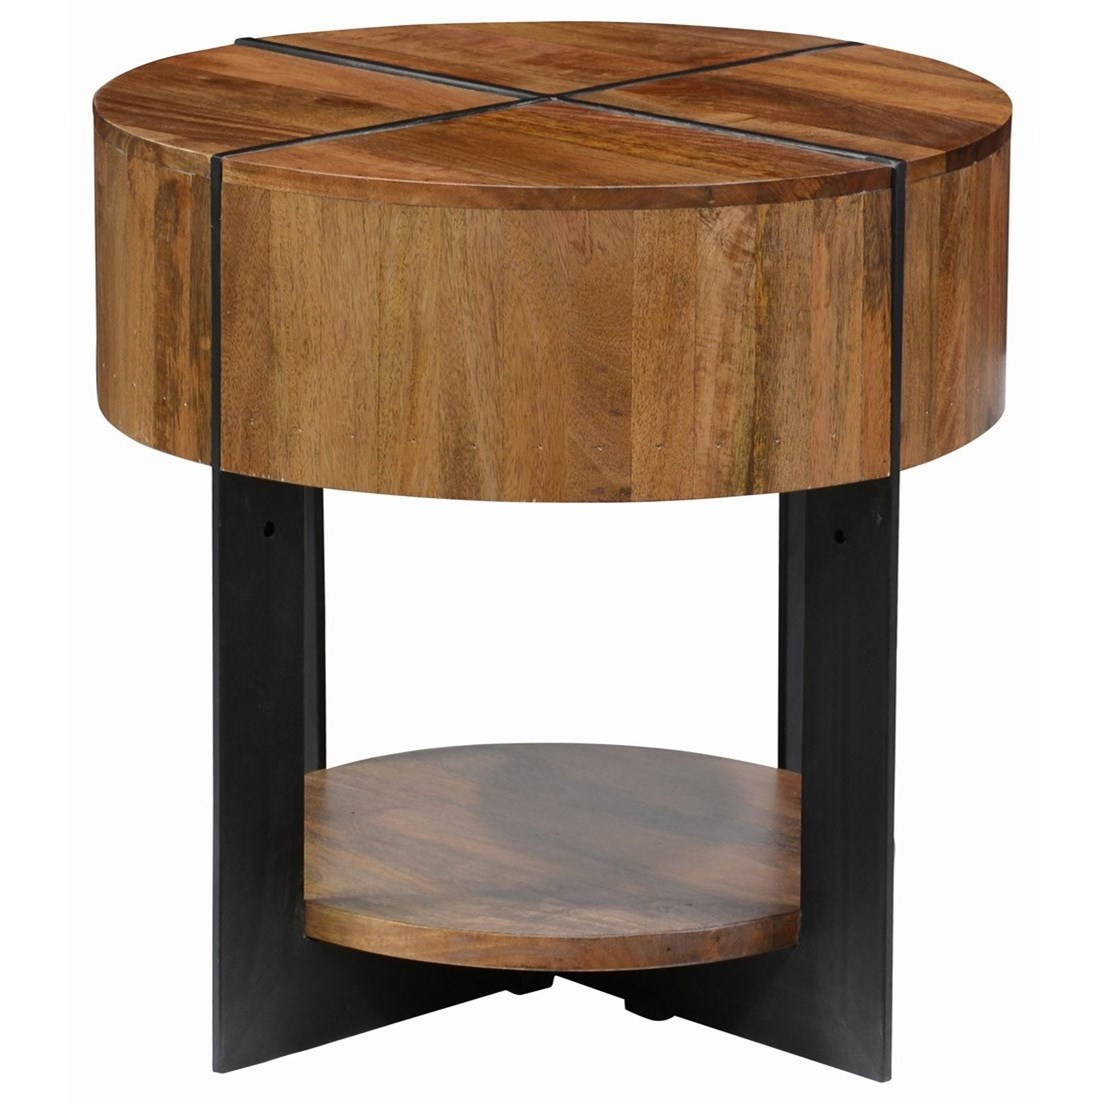 Classic home desmond round mango wood end table with iron for Classic home tables